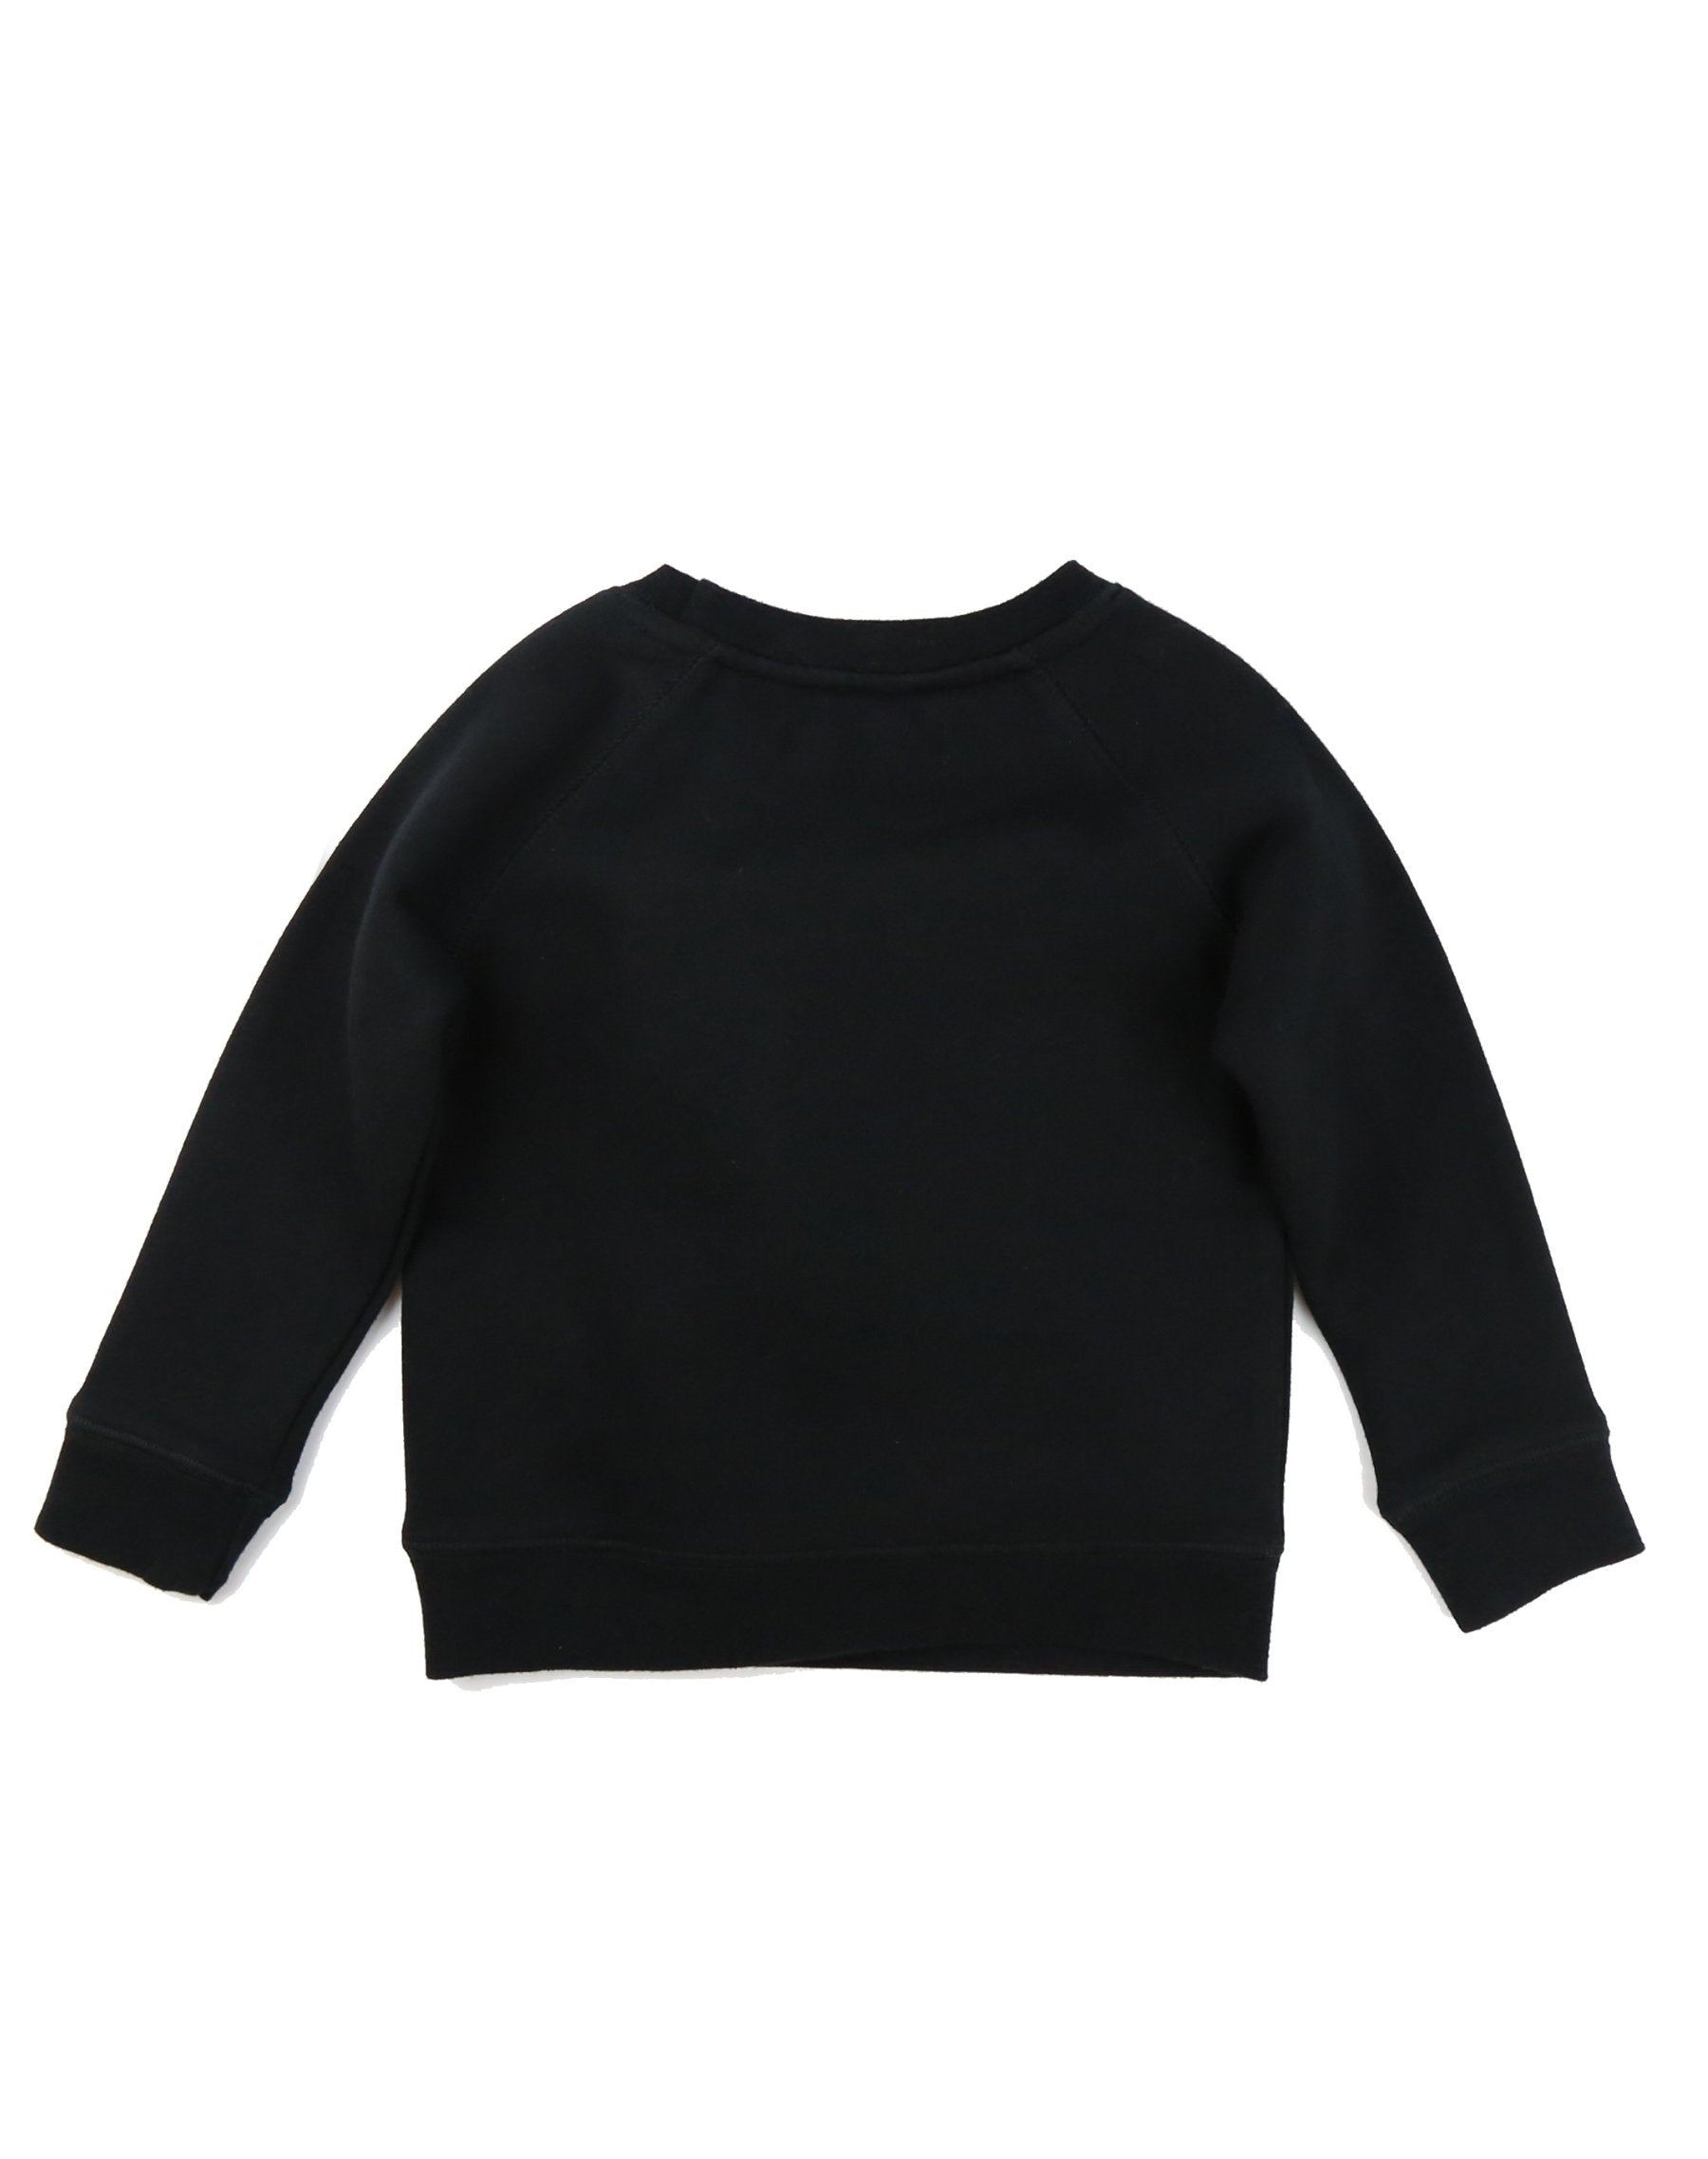 Photo of the back of the Blonde Little Babes classic crew neck sweatshirt in black by Brunette the Label.